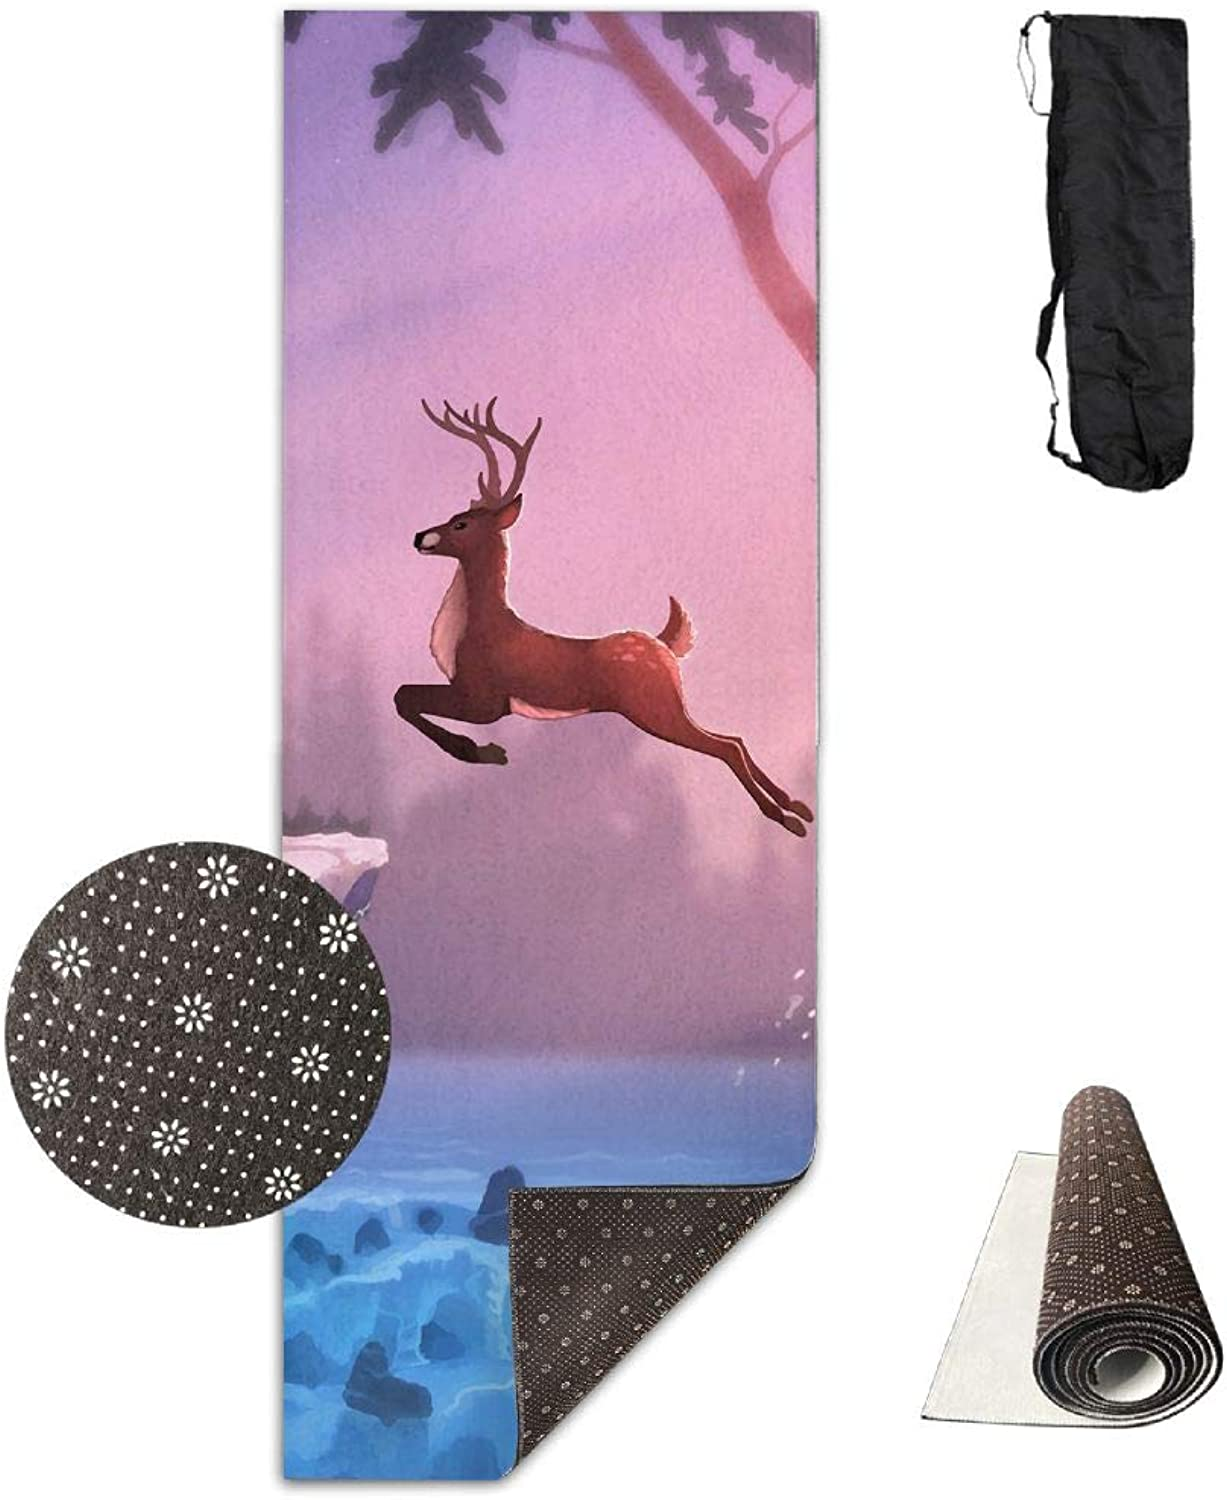 Yoga Mat Non Slip 24  X 71  Exercise Mats Deer Artwork Premium Fitness Pilates Carrying Strap